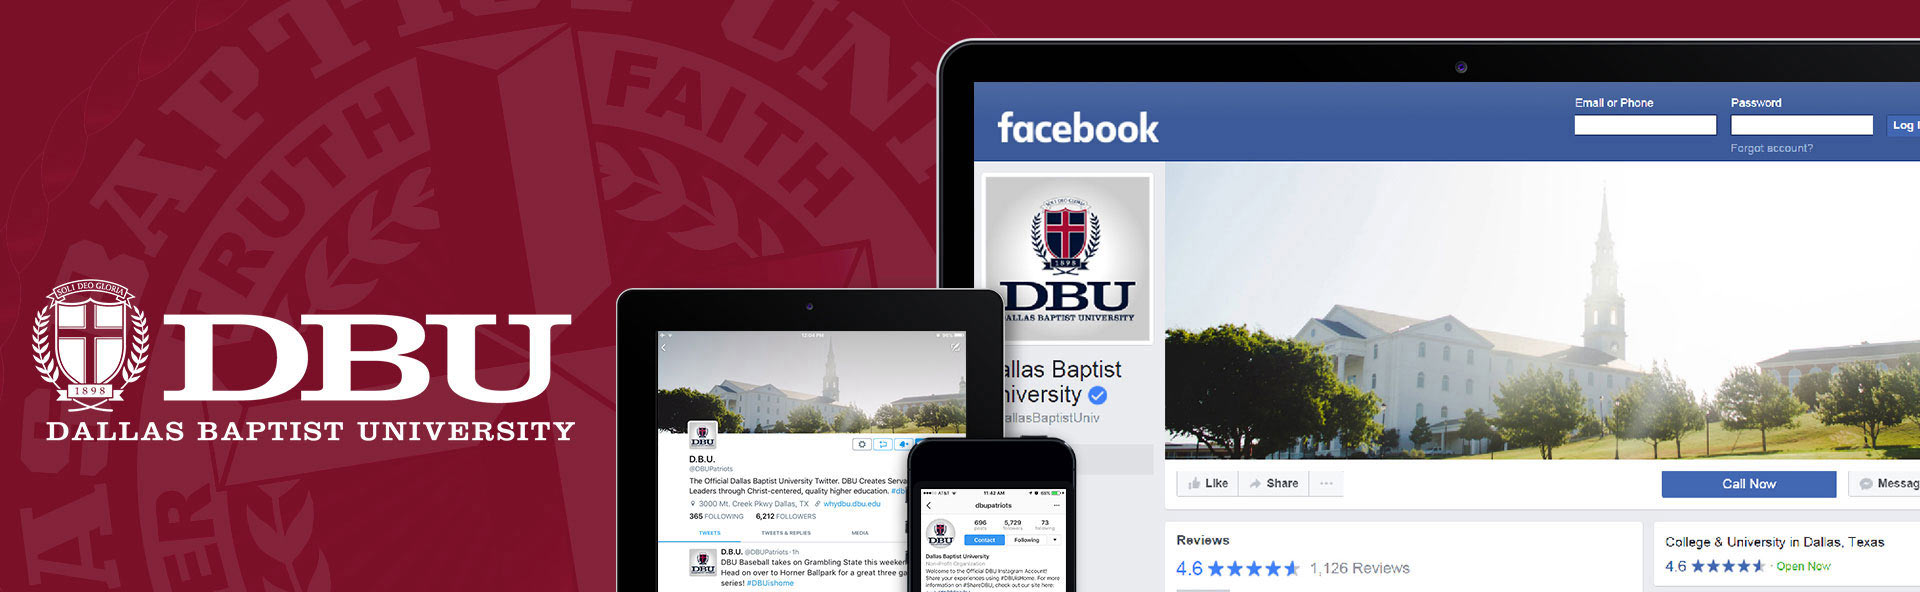 Official DBU Social Media Accounts Banner